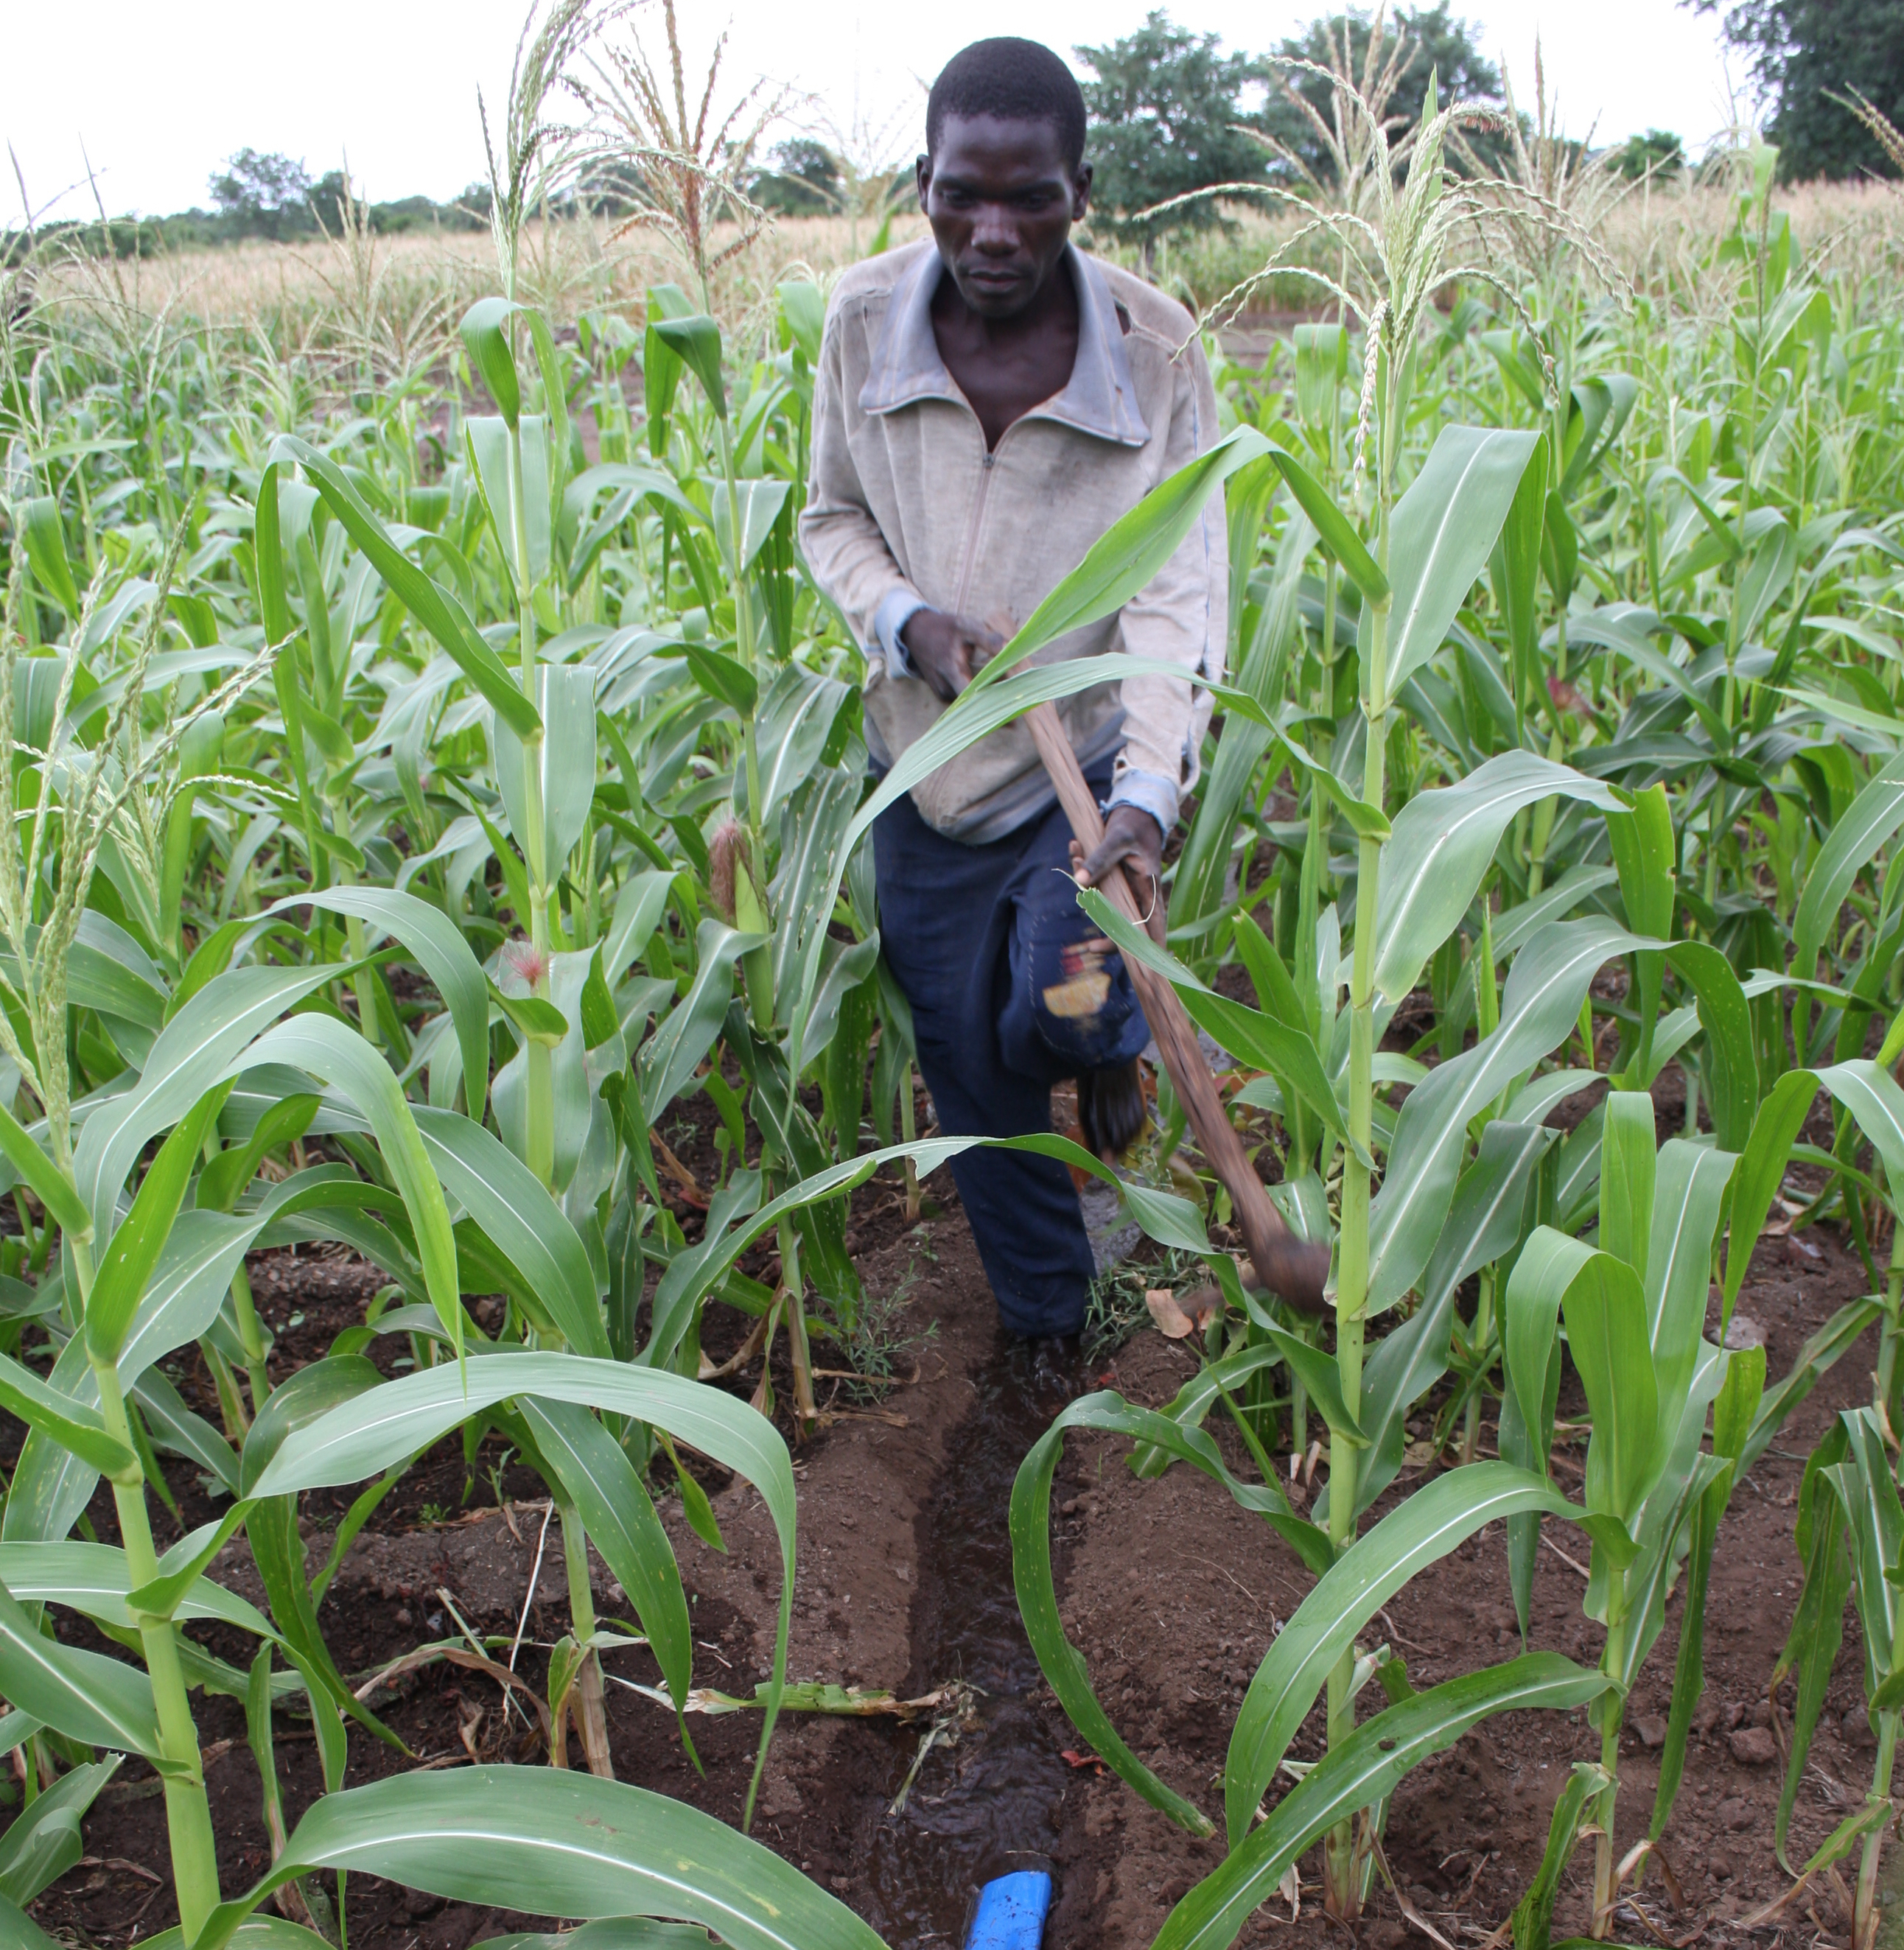 People and ploughs: from Scotland to Malawi